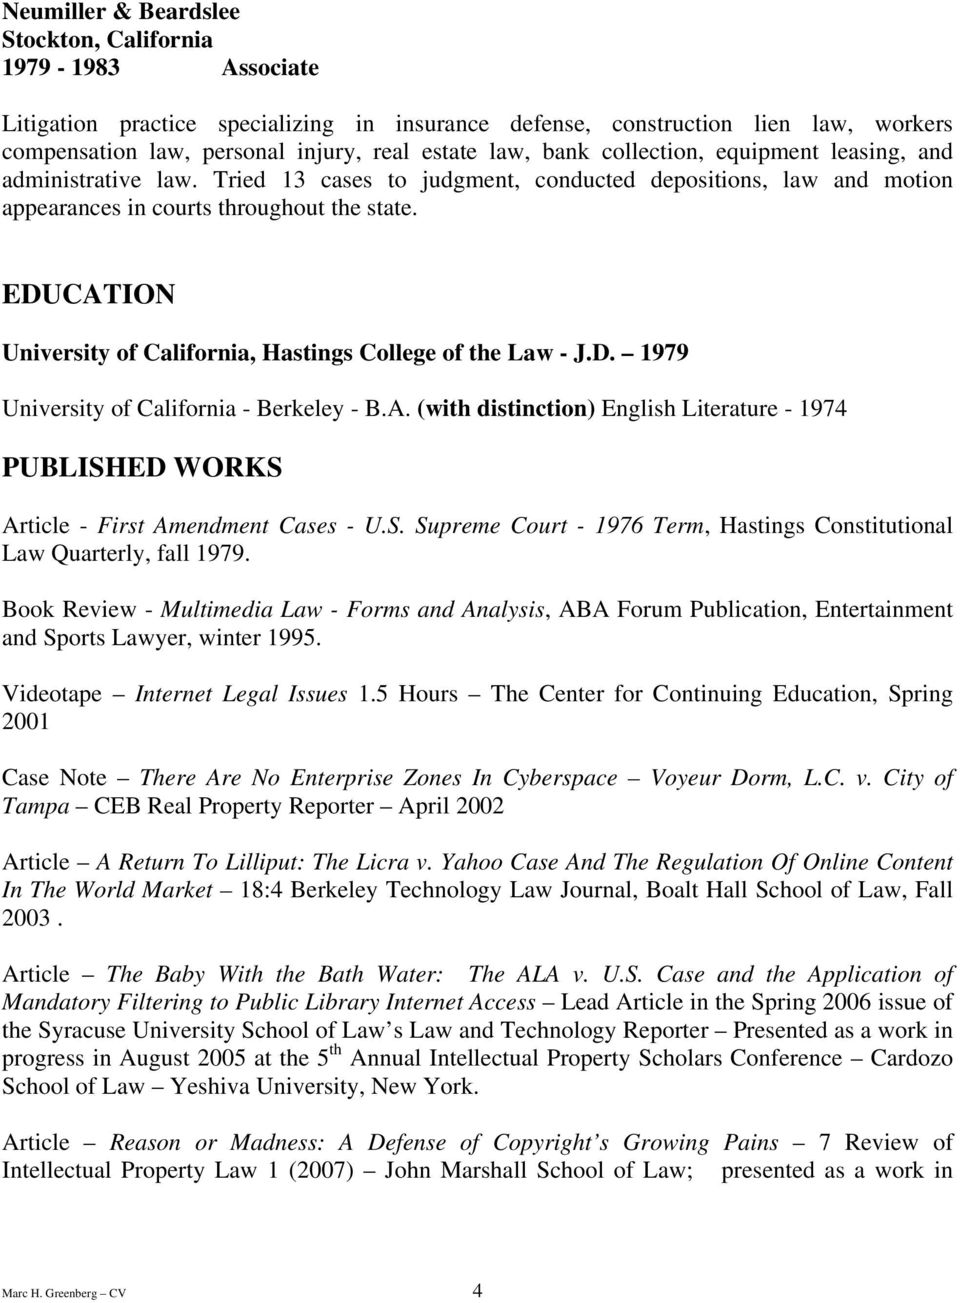 EDUCATION University of California, Hastings College of the Law - J.D. 1979 University of California - Berkeley - B.A. (with distinction) English Literature - 1974 PUBLISHED WORKS Article - First Amendment Cases - U.